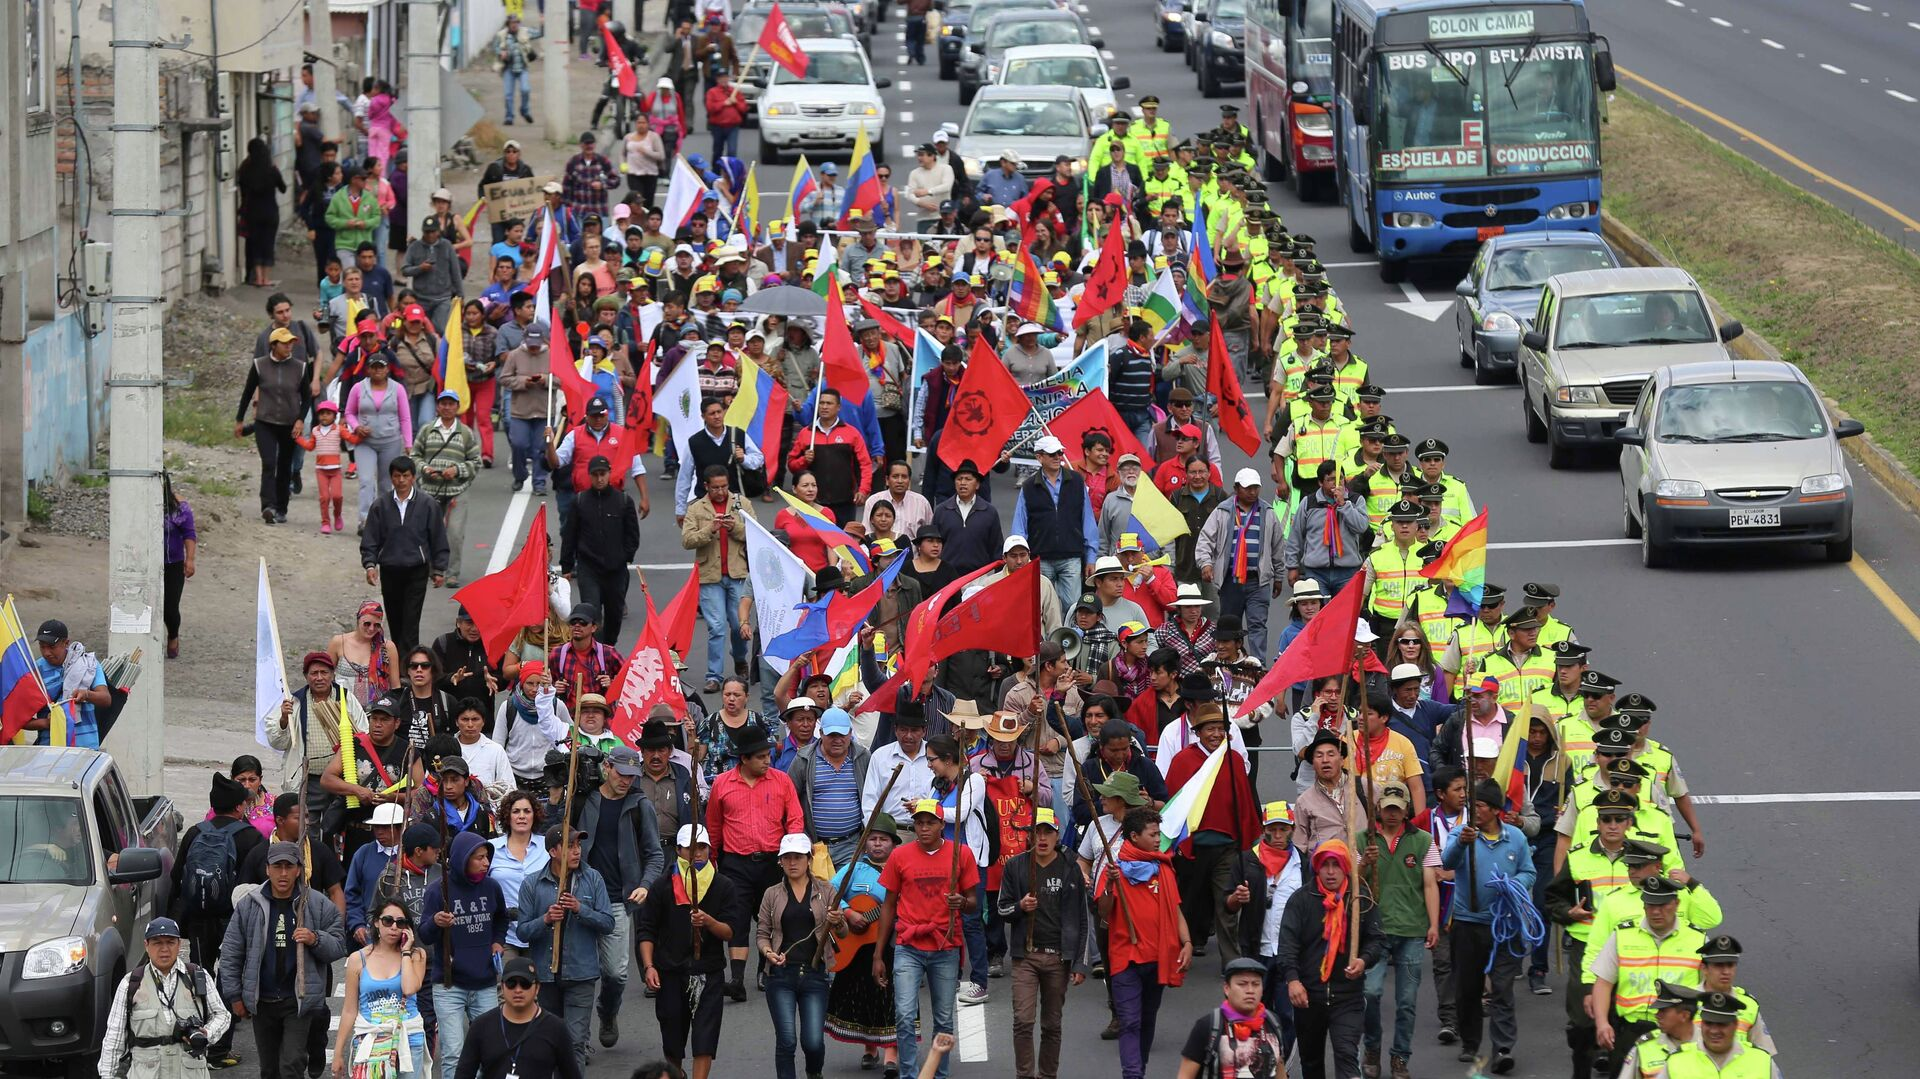 Indigenous anti-government protesters march to the capital from Machachi, Ecuador, Tuesday, Aug. 11, 2015. The group is going to Quito to join anti-government protesters who have organized a national strike starting Thursday.  - Sputnik Mundo, 1920, 10.09.2021